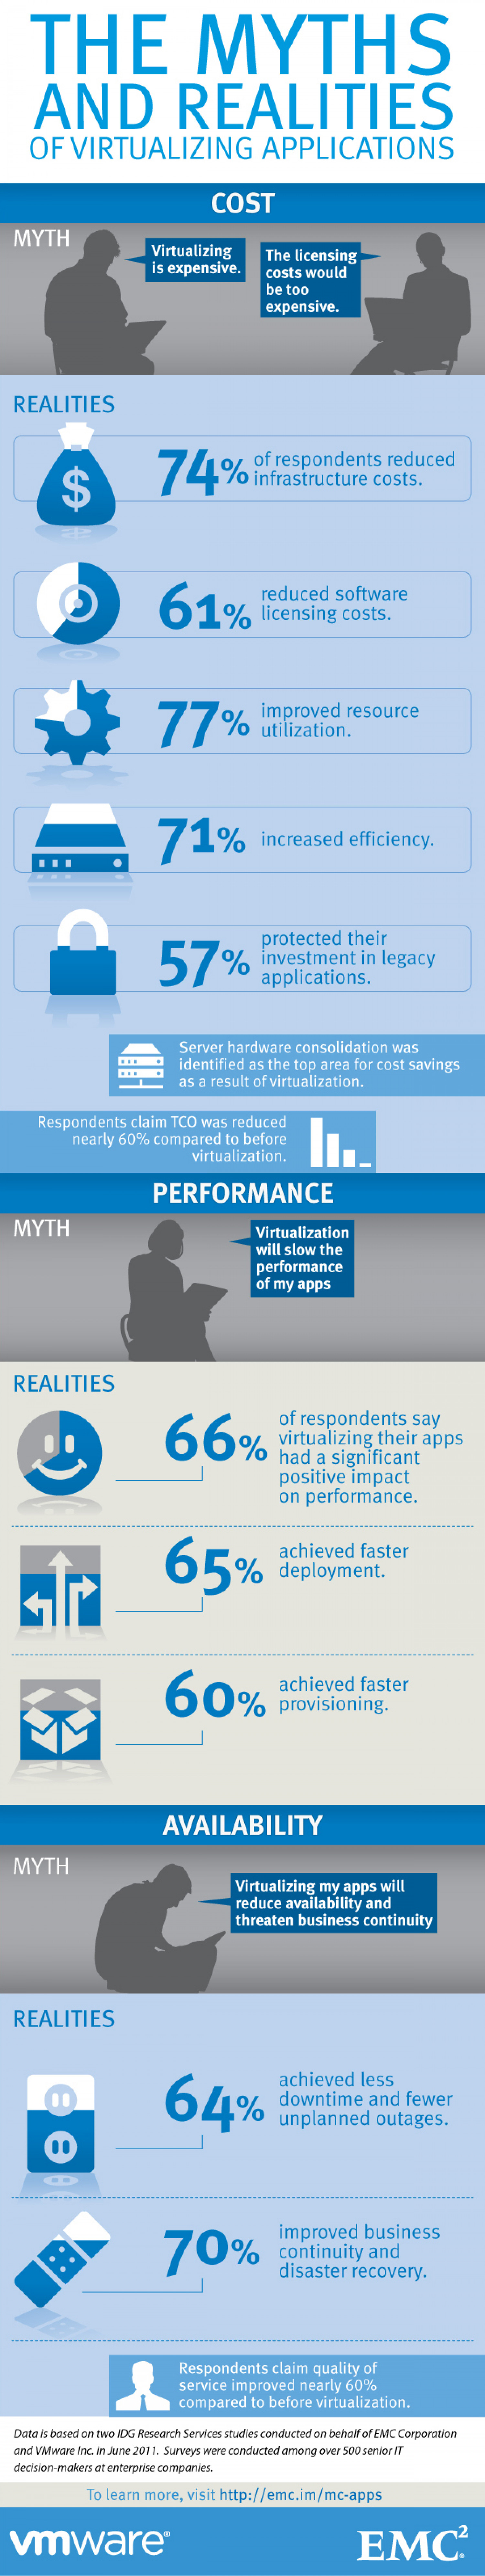 The Myths and Realities of Virtualizing Applications Infographic